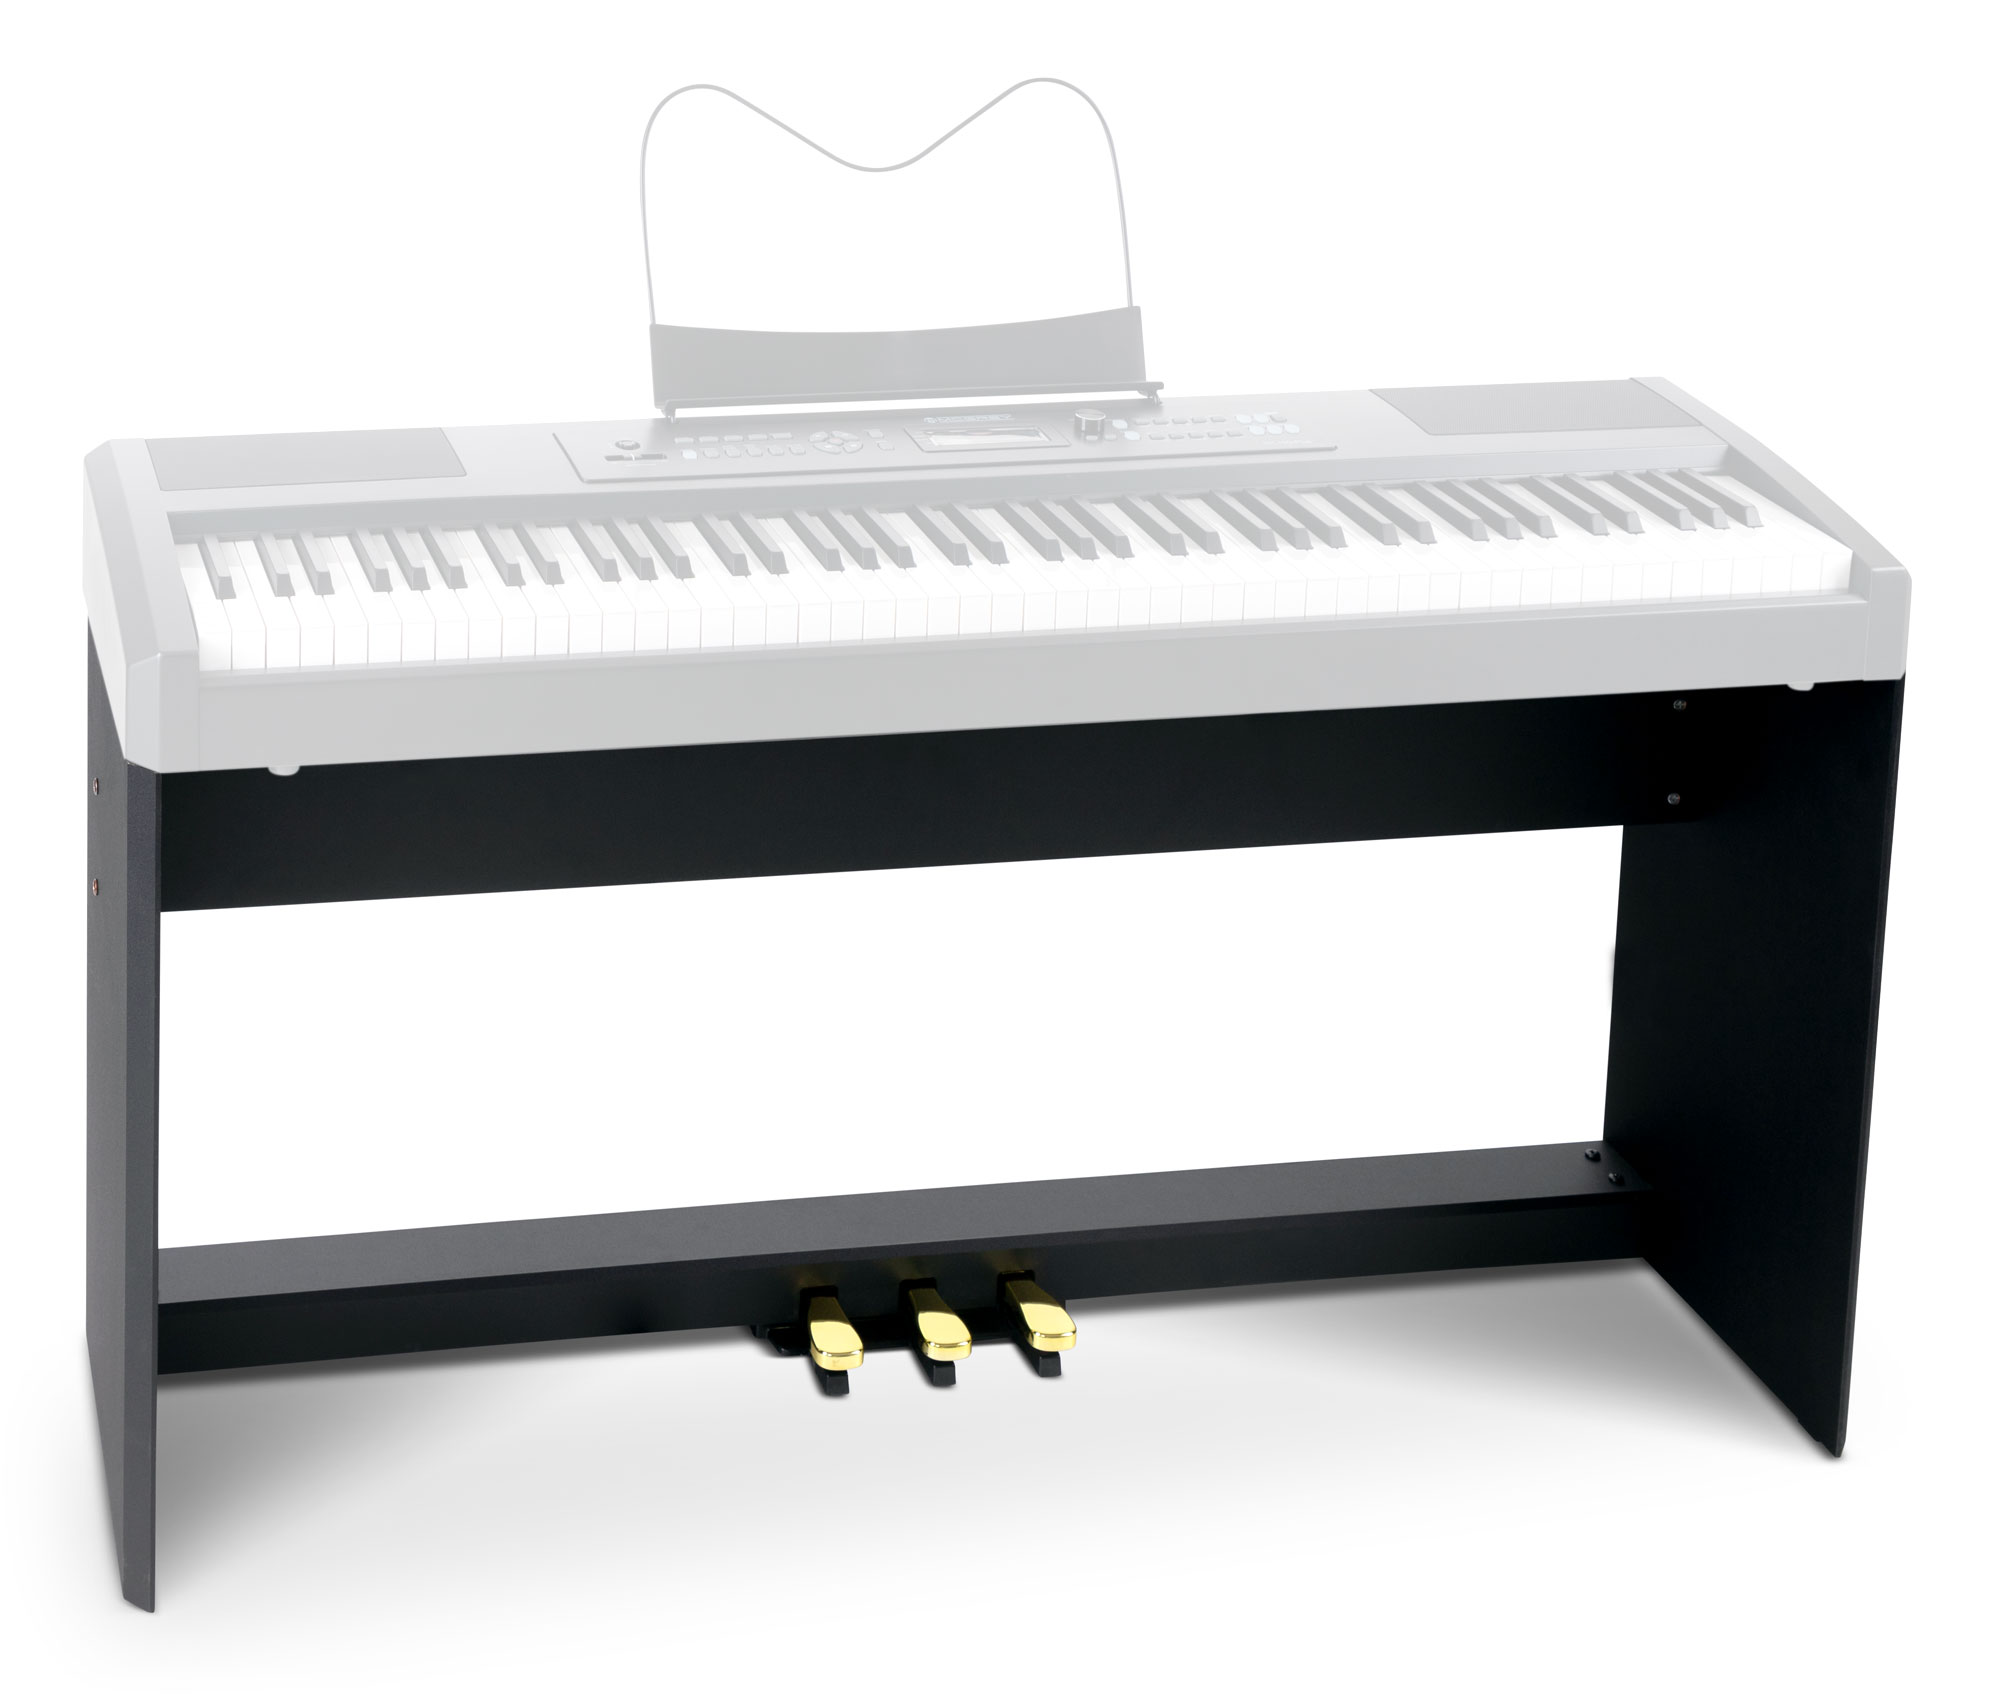 Robuster Classic Cantabile Fußschalter Sustainpedal für Keyboard /& Piano NEUWARE